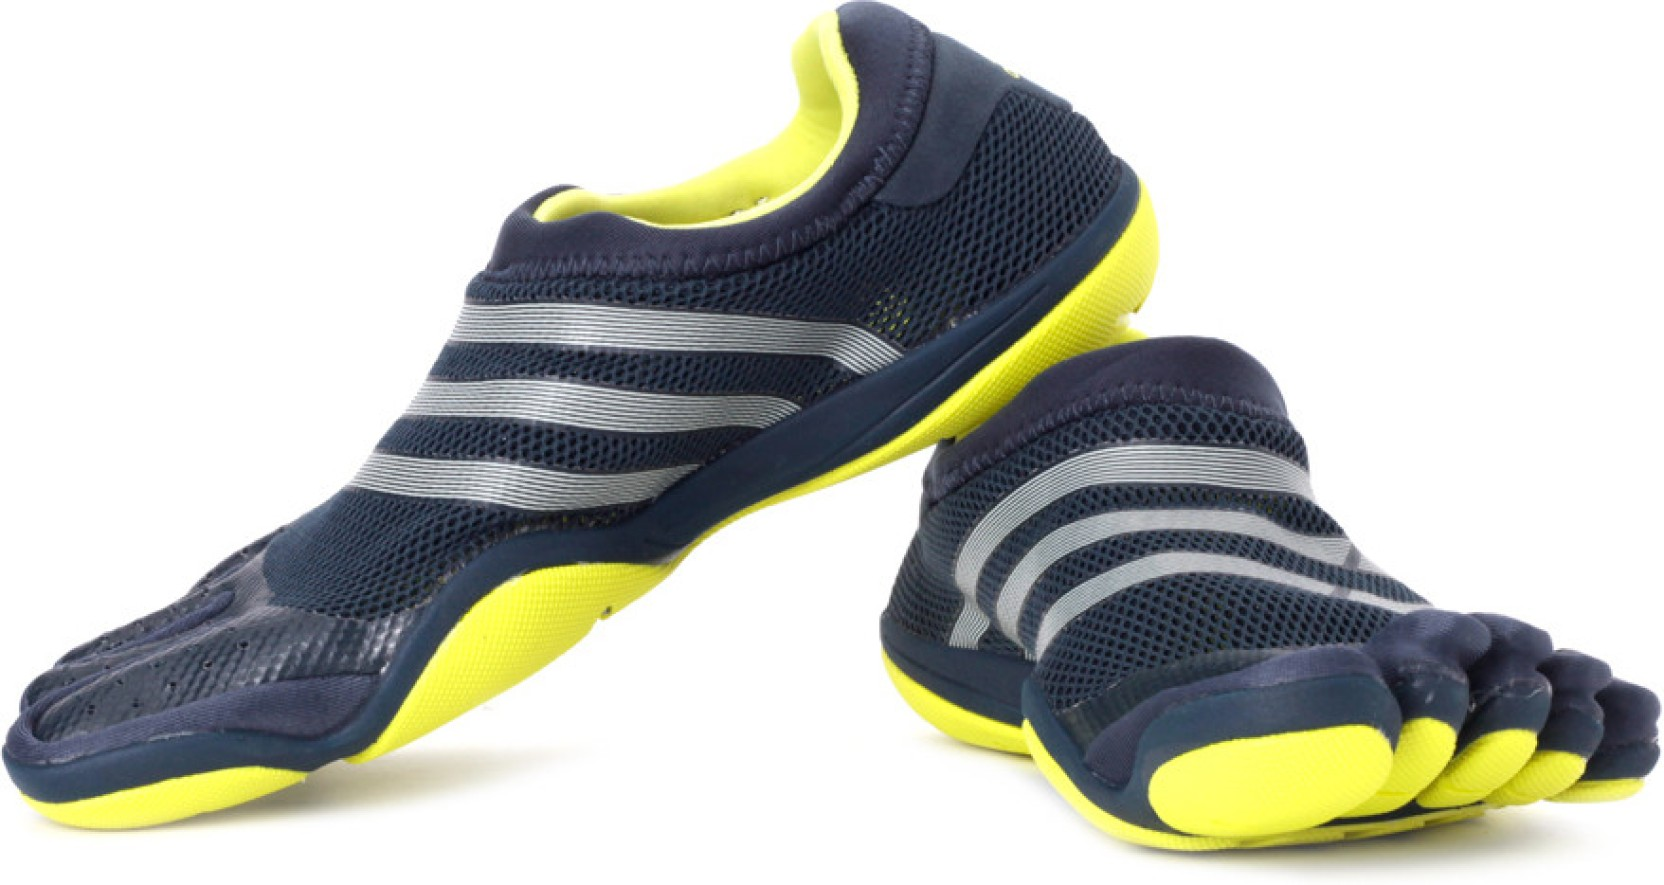 Adipure Toe Shoes Uk